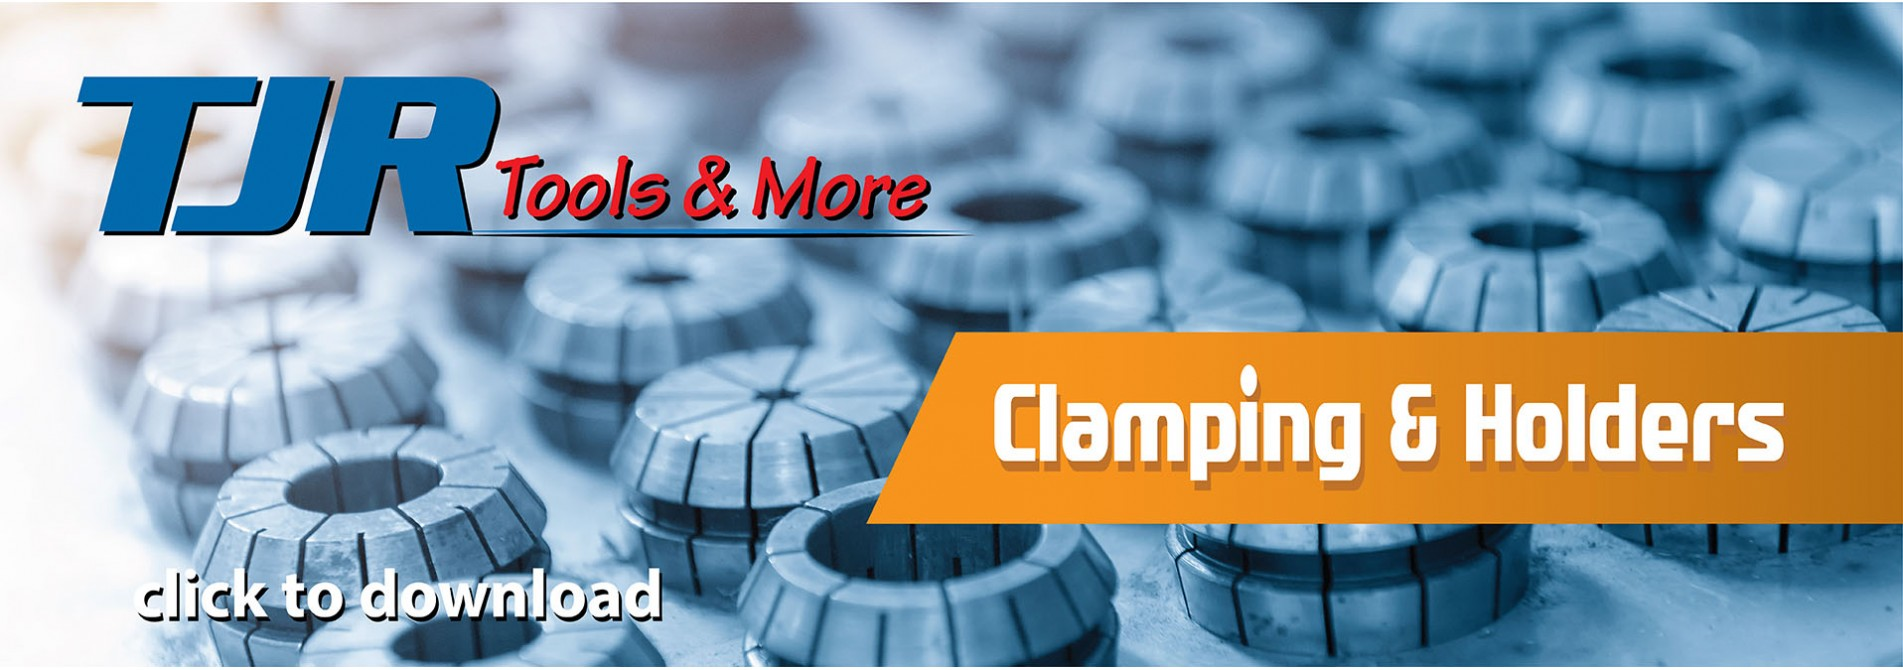 CLAMPING HOLDERS